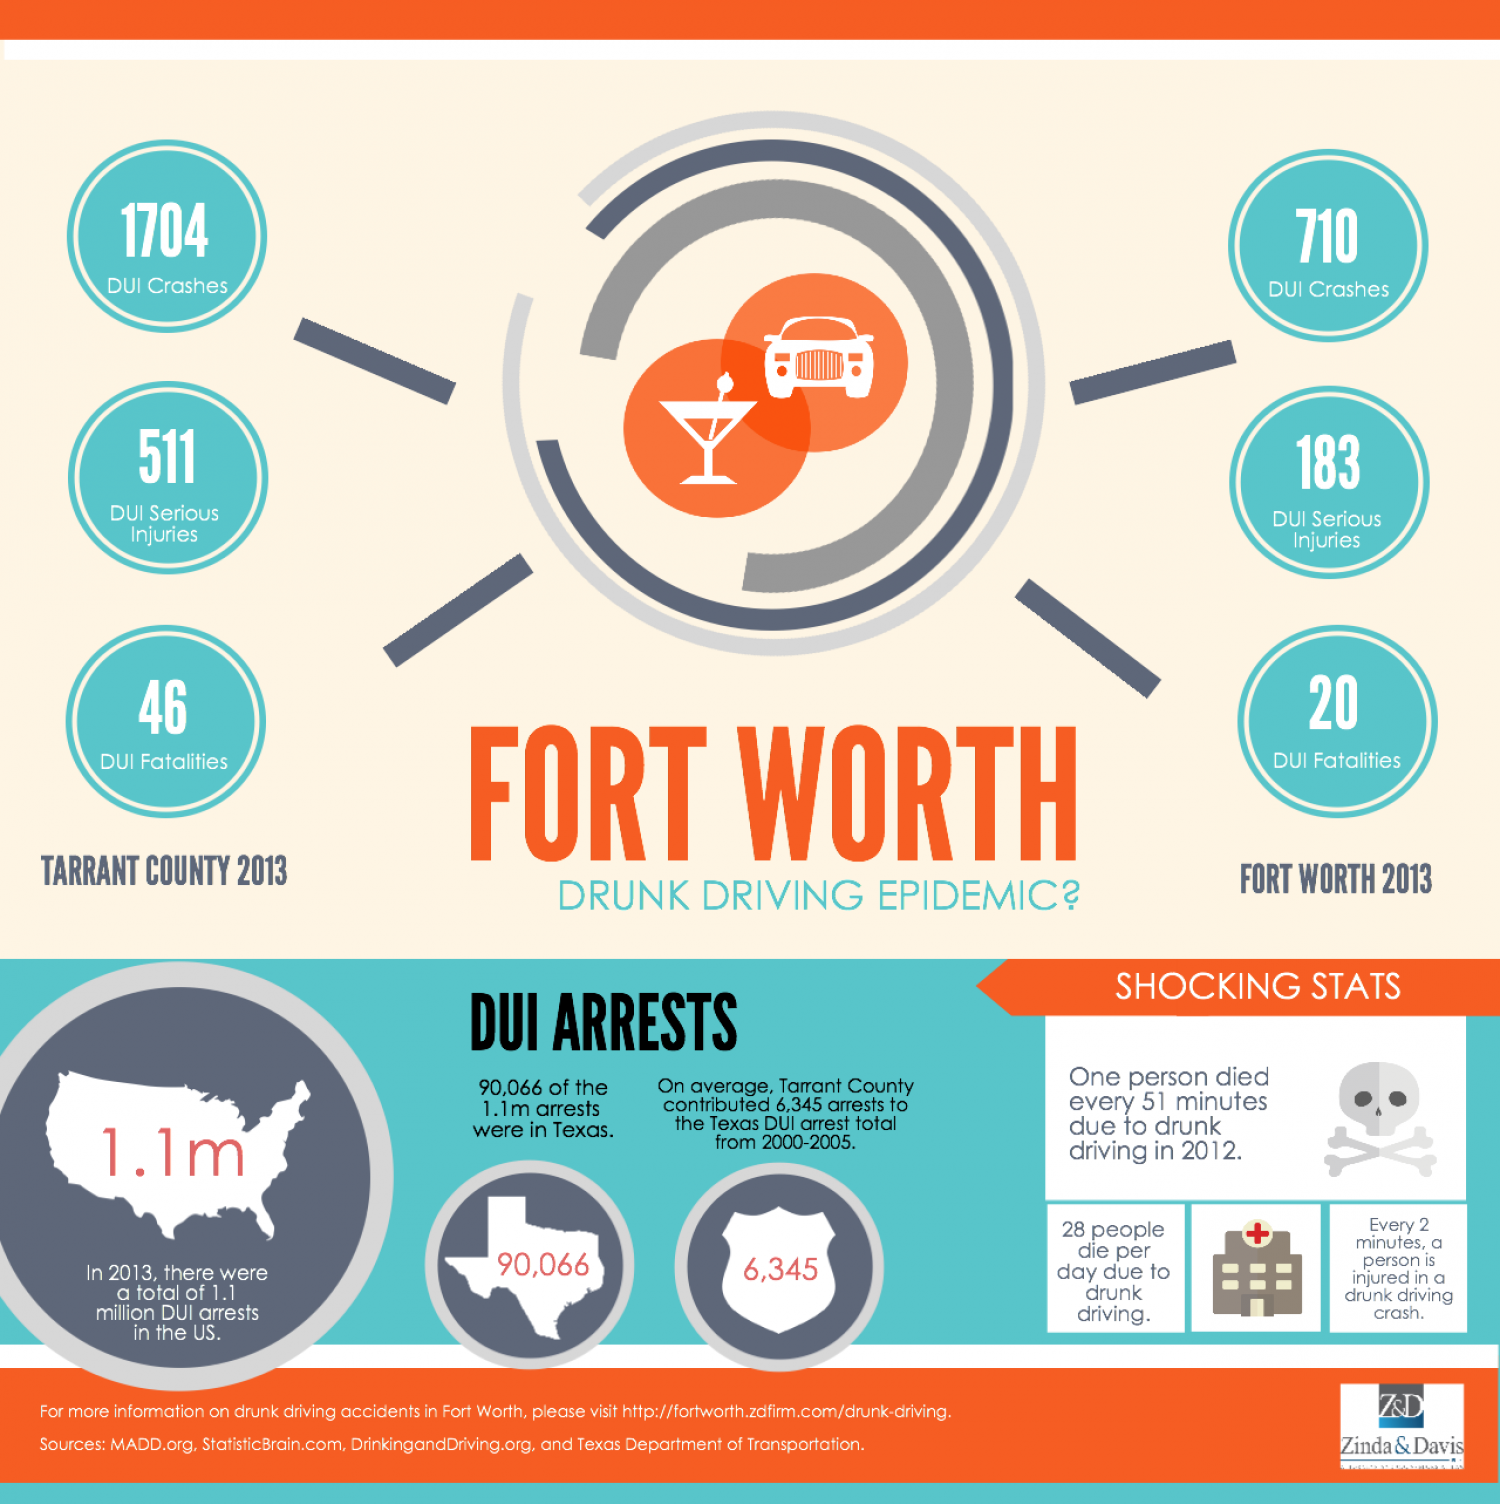 Fort Worth Drunk Driving Epidemic? Infographic